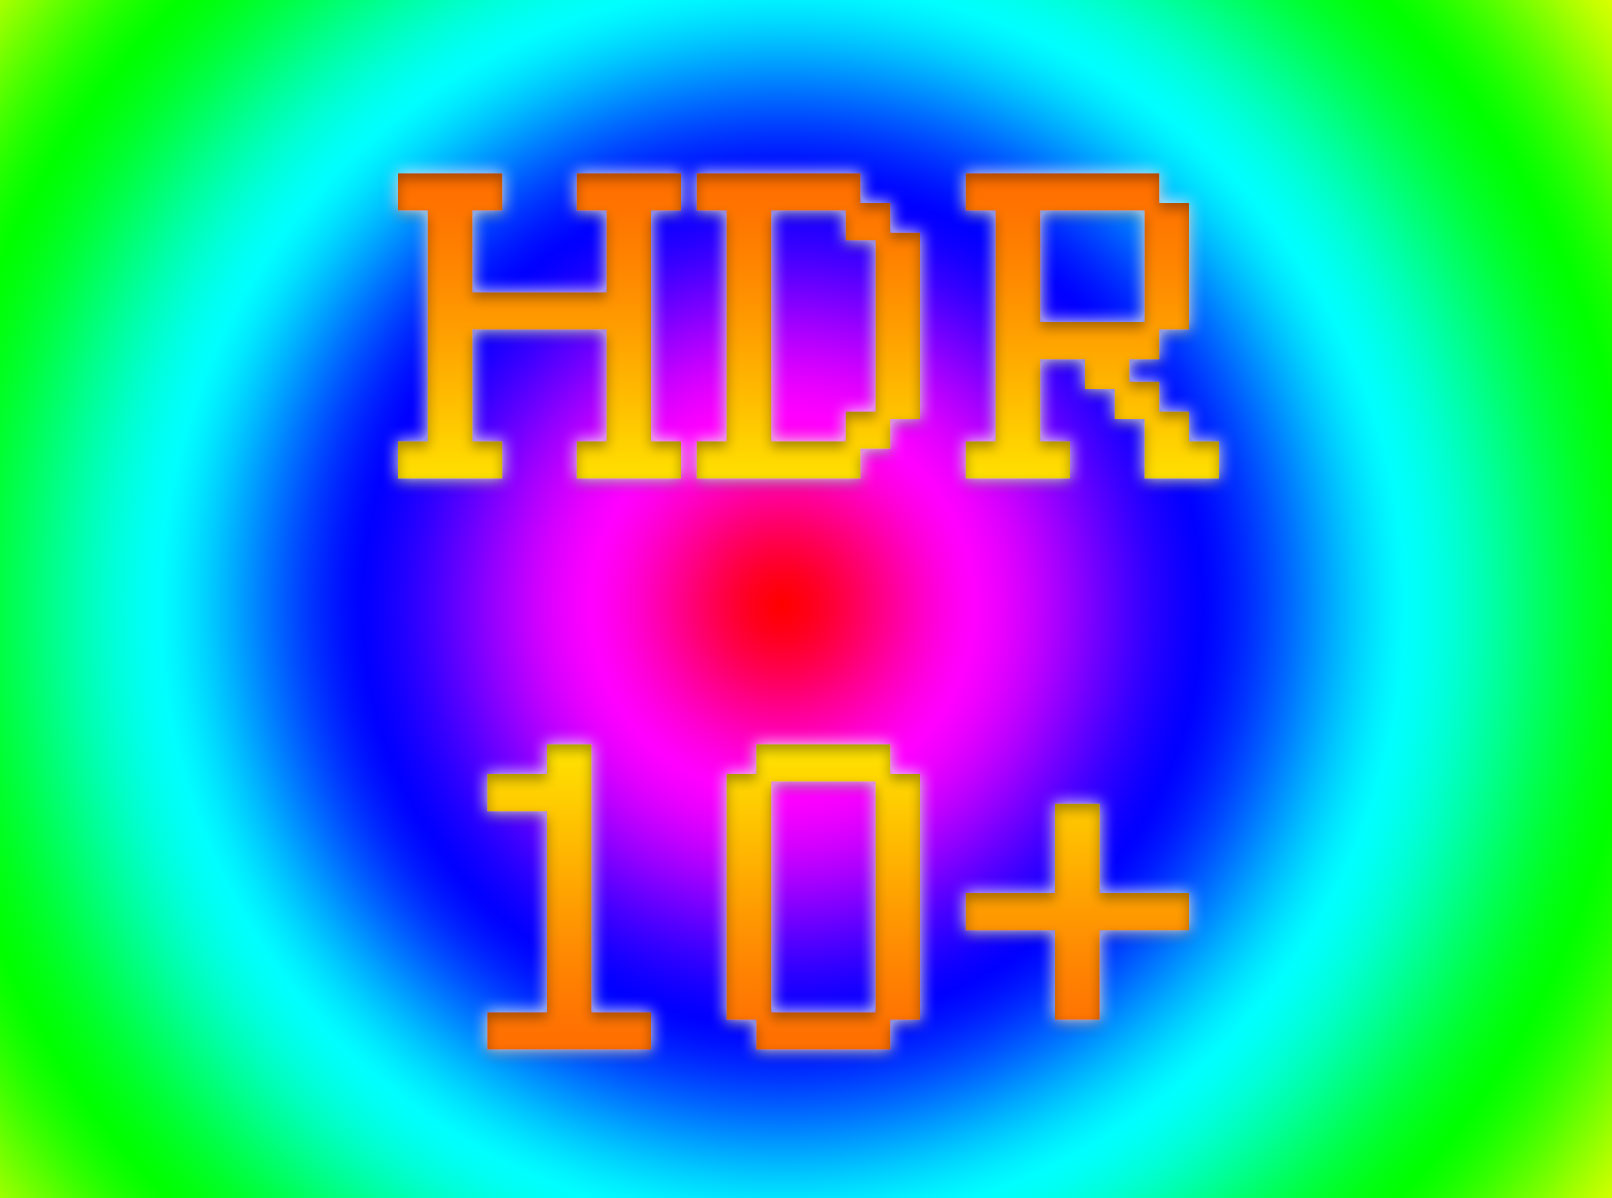 Amazon and Samsung expand HDR10 standard - HDR10 +